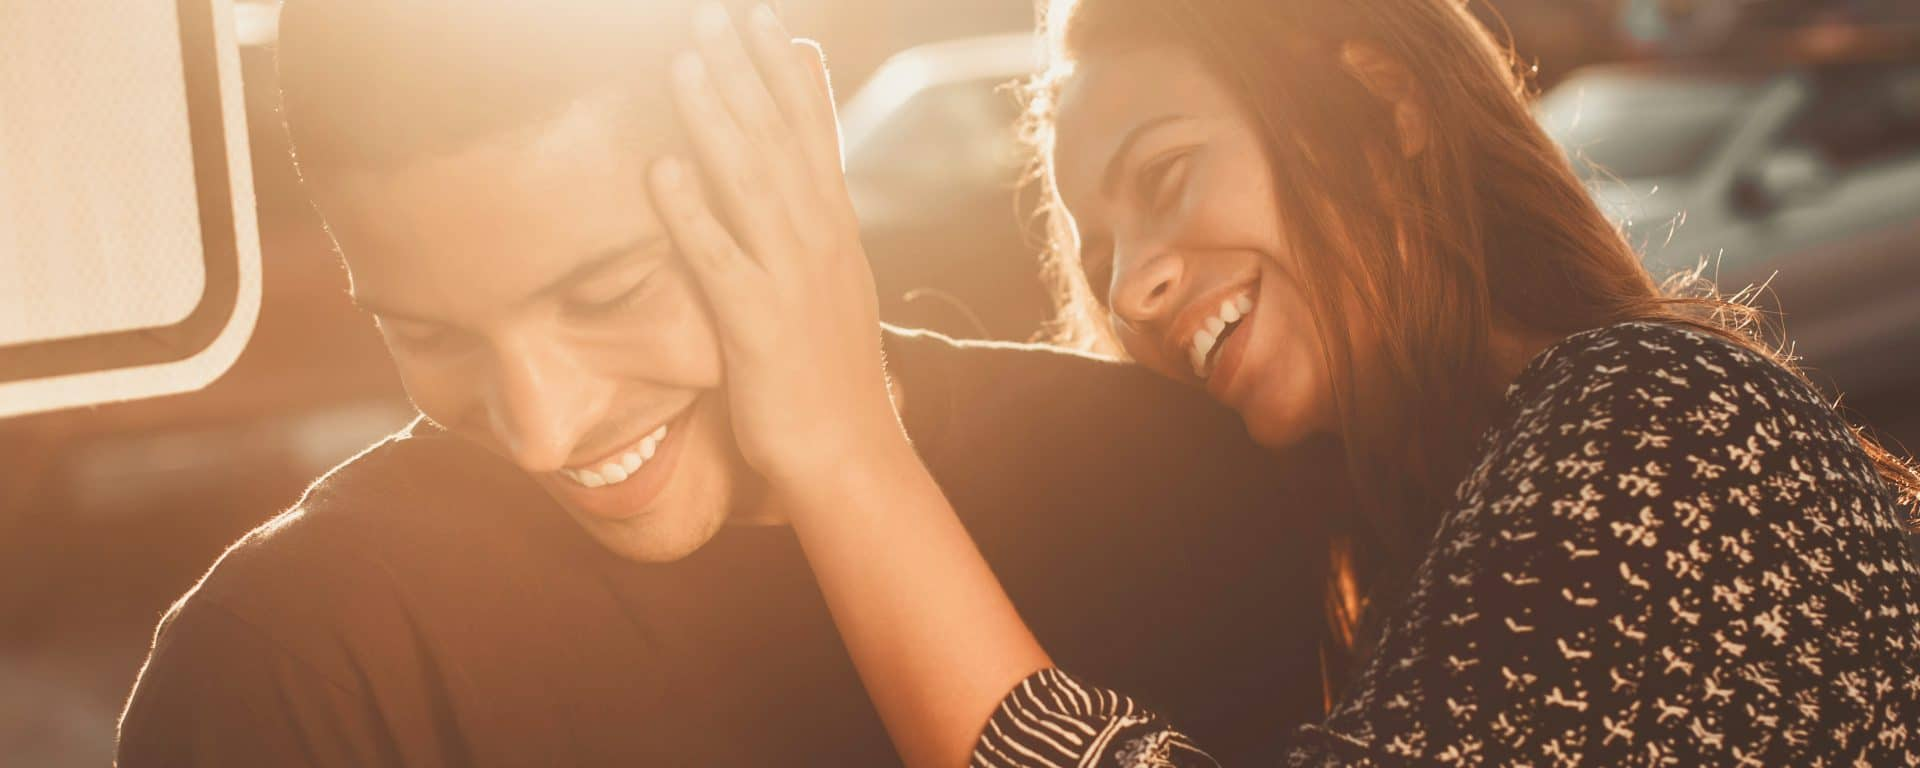 The 10 Most Asked Relationship Questions from Around the Web